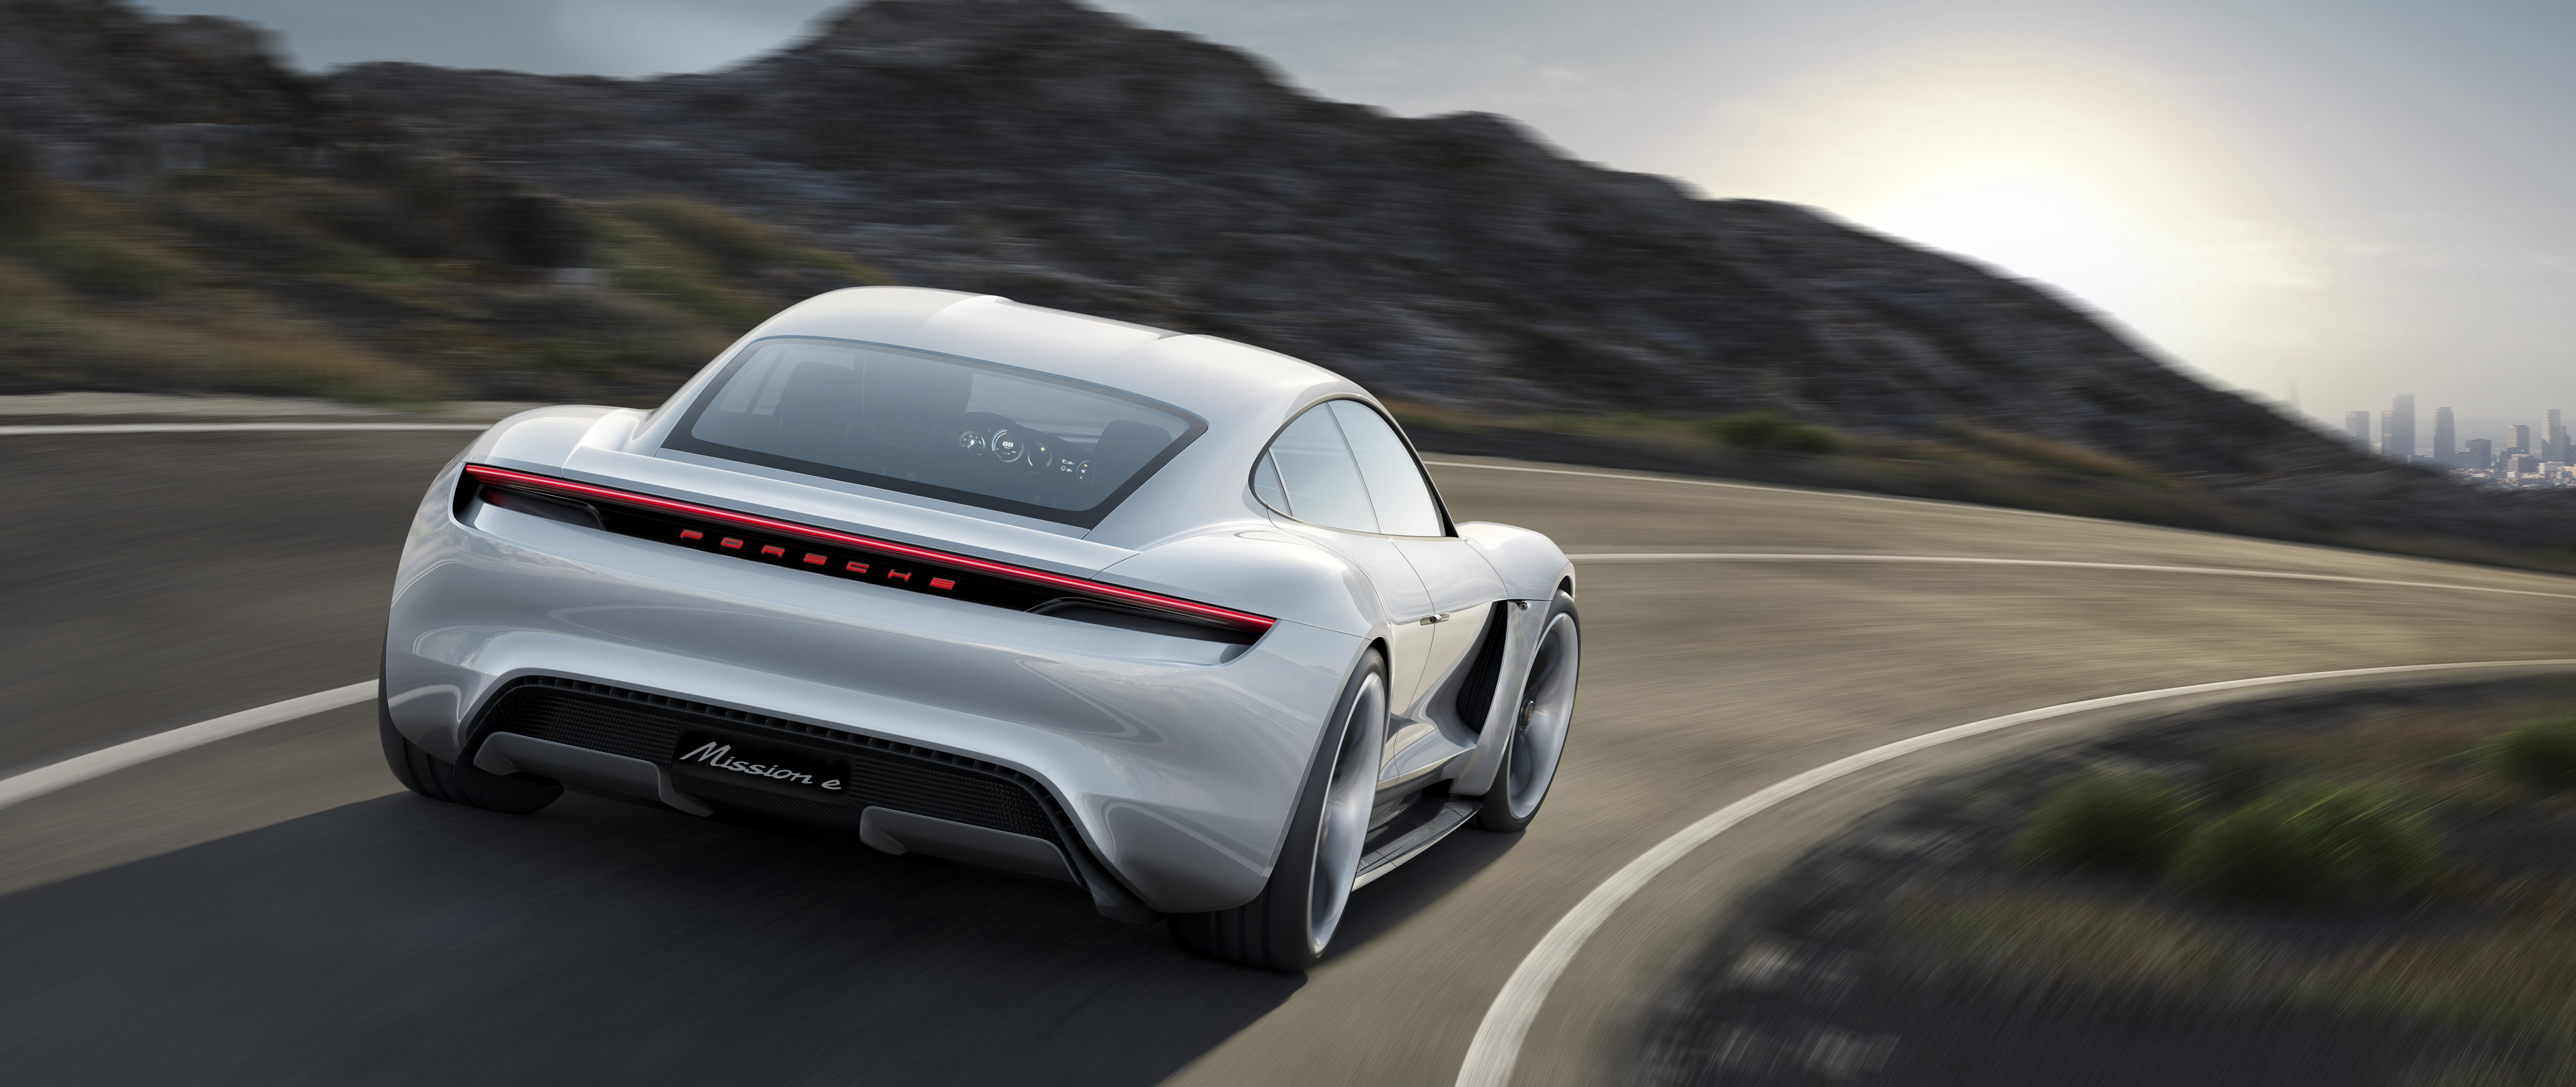 And The Specs That Porsche Has Released Are Somewhat Arguably Compeive With Performance Version Of Tesla Model S Which Would Likely Be Its Main